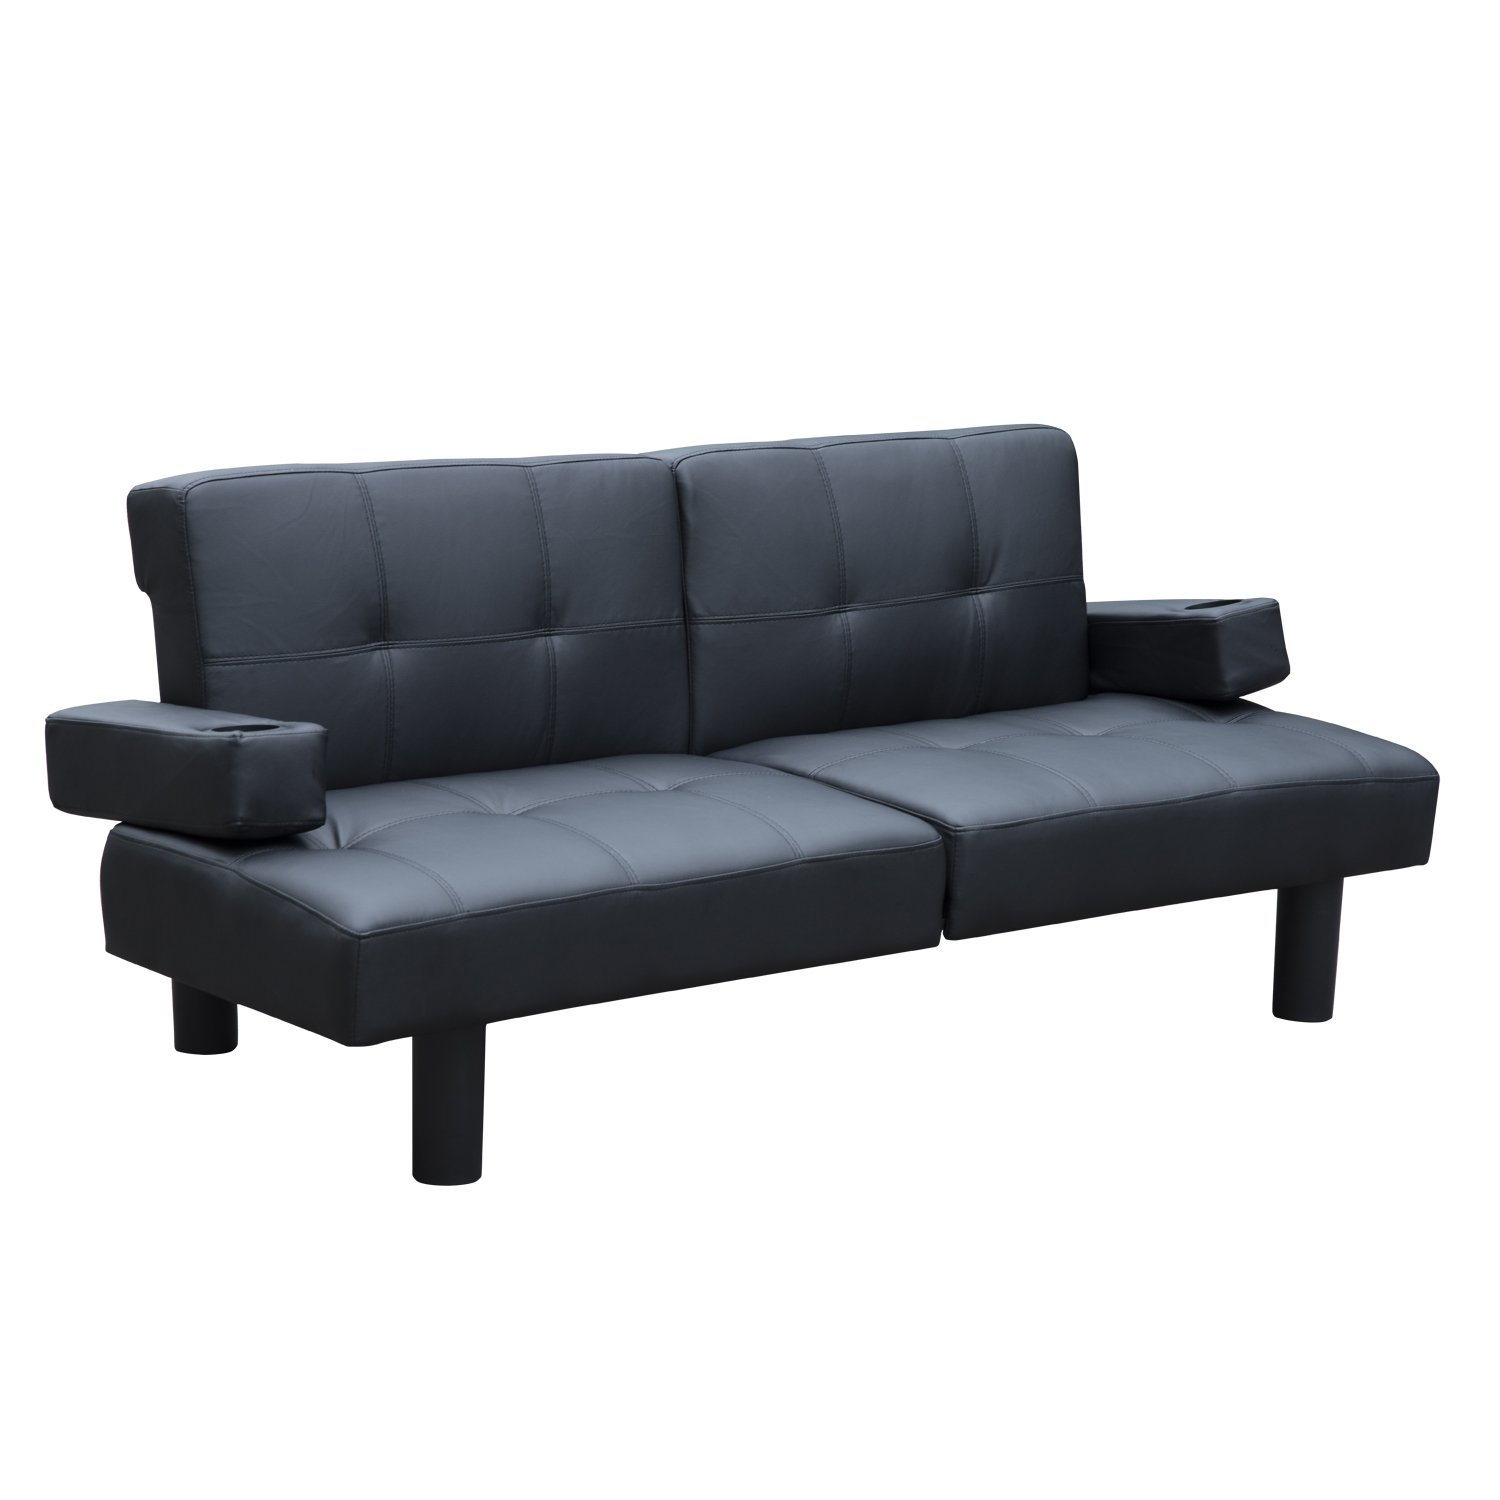 HomCom 72 Two-in-One Modern Sleeper Sofa